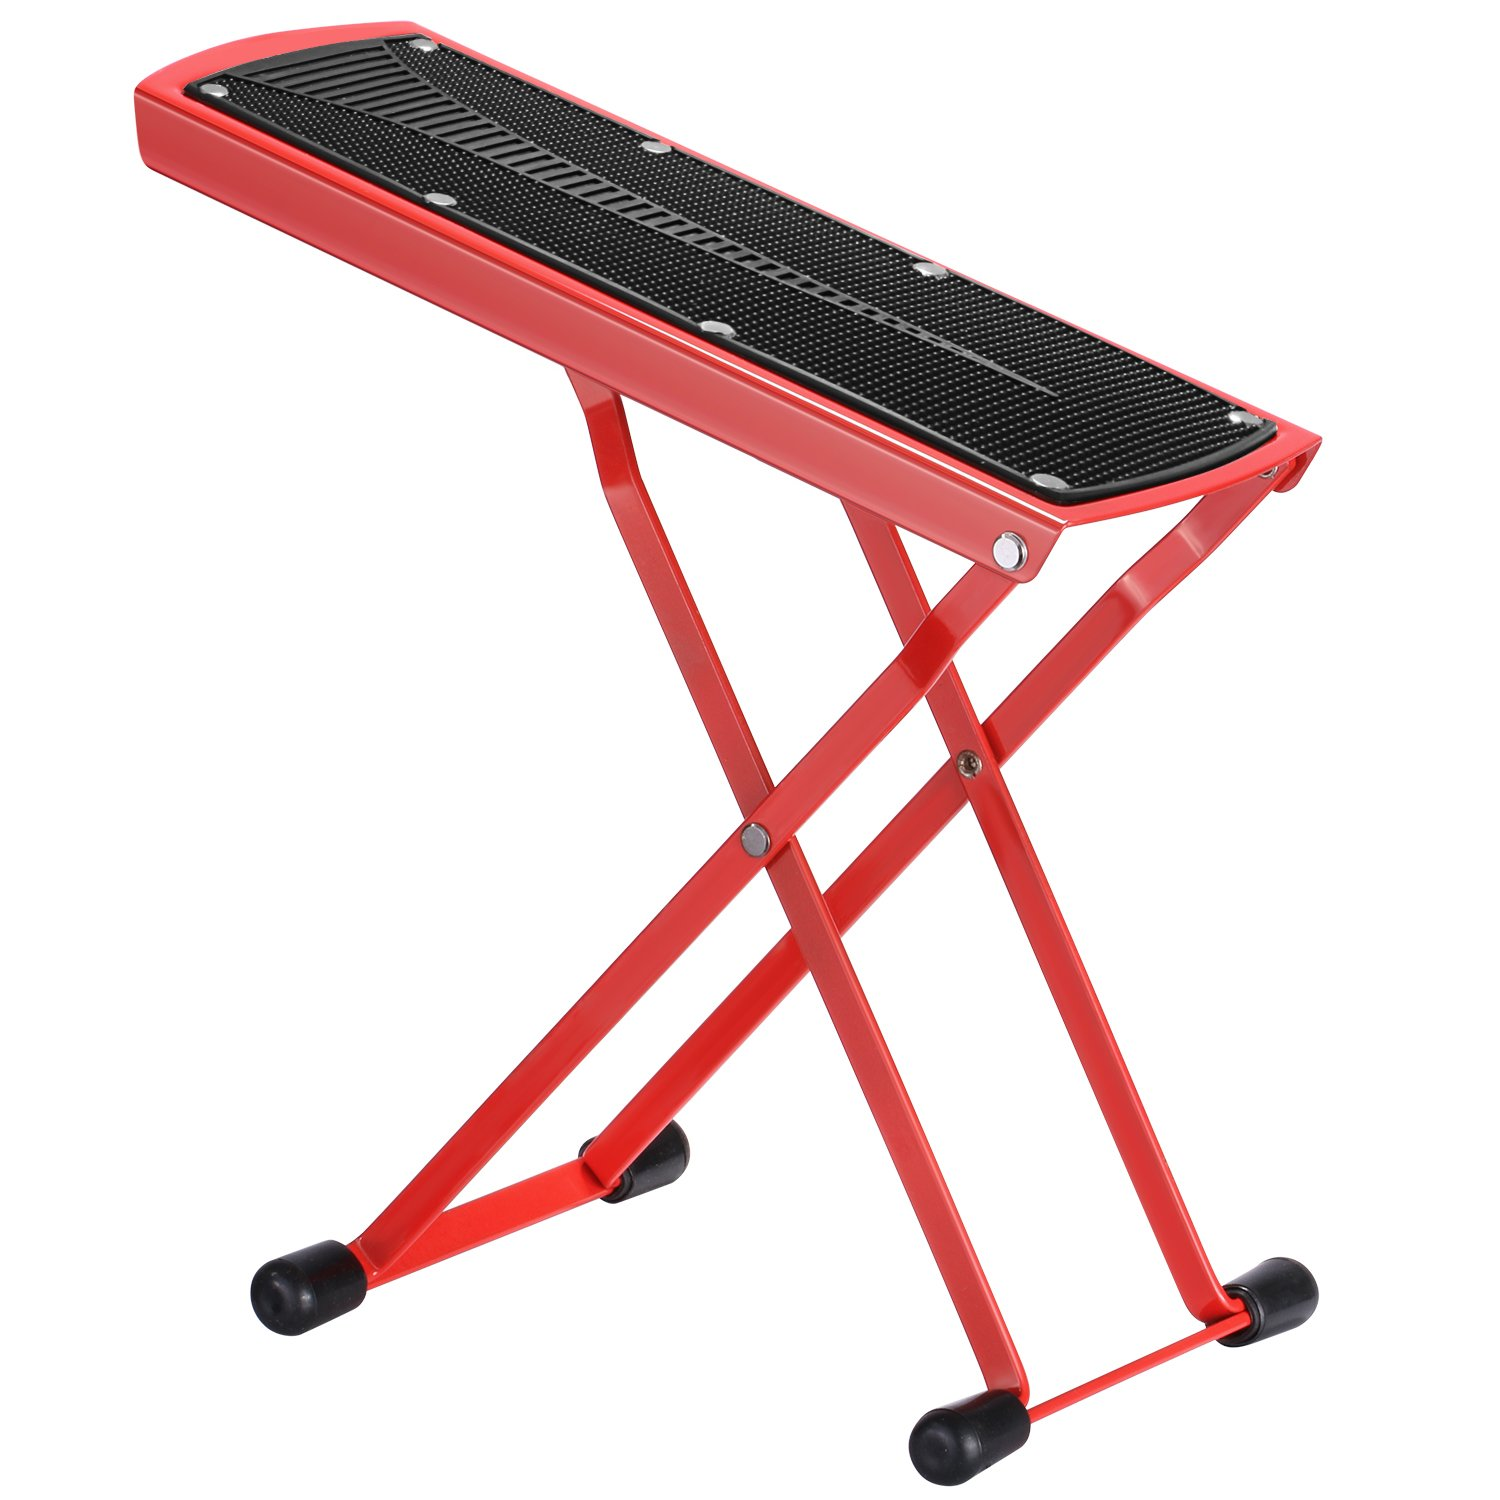 Neewer Extra Sturdy Guitar Foot Rest Made of Solid Iron, Provides 6 Easily Adjusted Height Positions, Excellent Stability with Rubber End Caps and Non-slip Rubber Pad (Red) 40089207